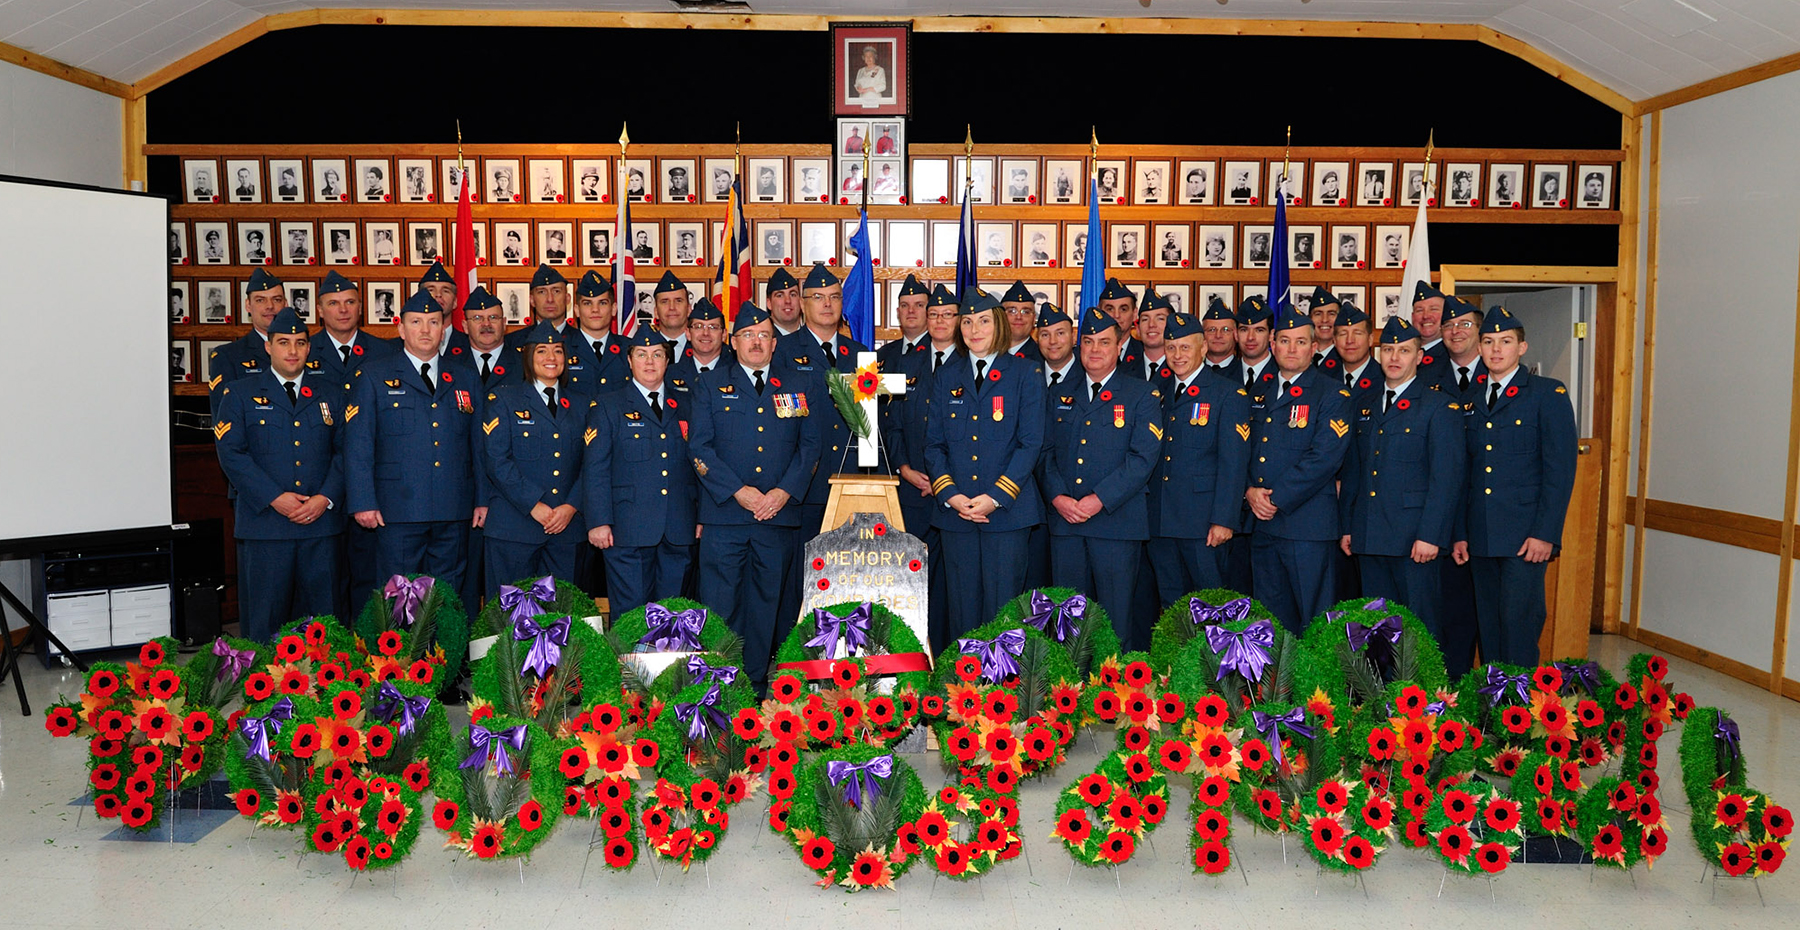 Members of 10 Field Technical Training Squadron stand in front of a wall of photographic portraits of war veterans at 4 Wing Cold Lake, Alberta, after taking part in the Mallaig, Alberta, Legion Remembrance Day ceremony held on November 11, 2009. PHOTO: Master Corporal Kelly Low, FT2009-0080-23